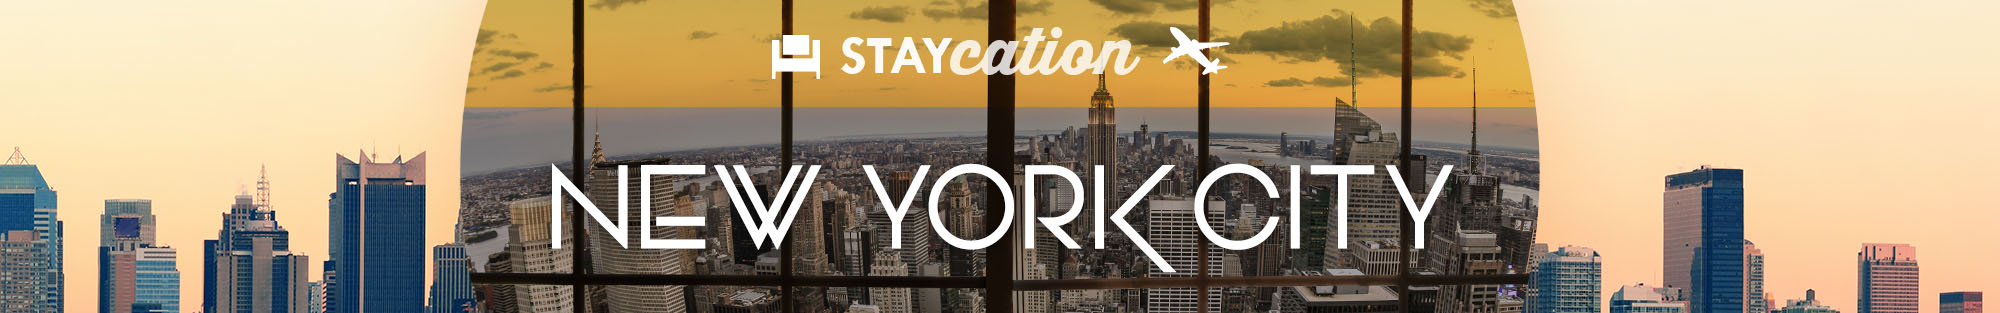 Staycation - New York